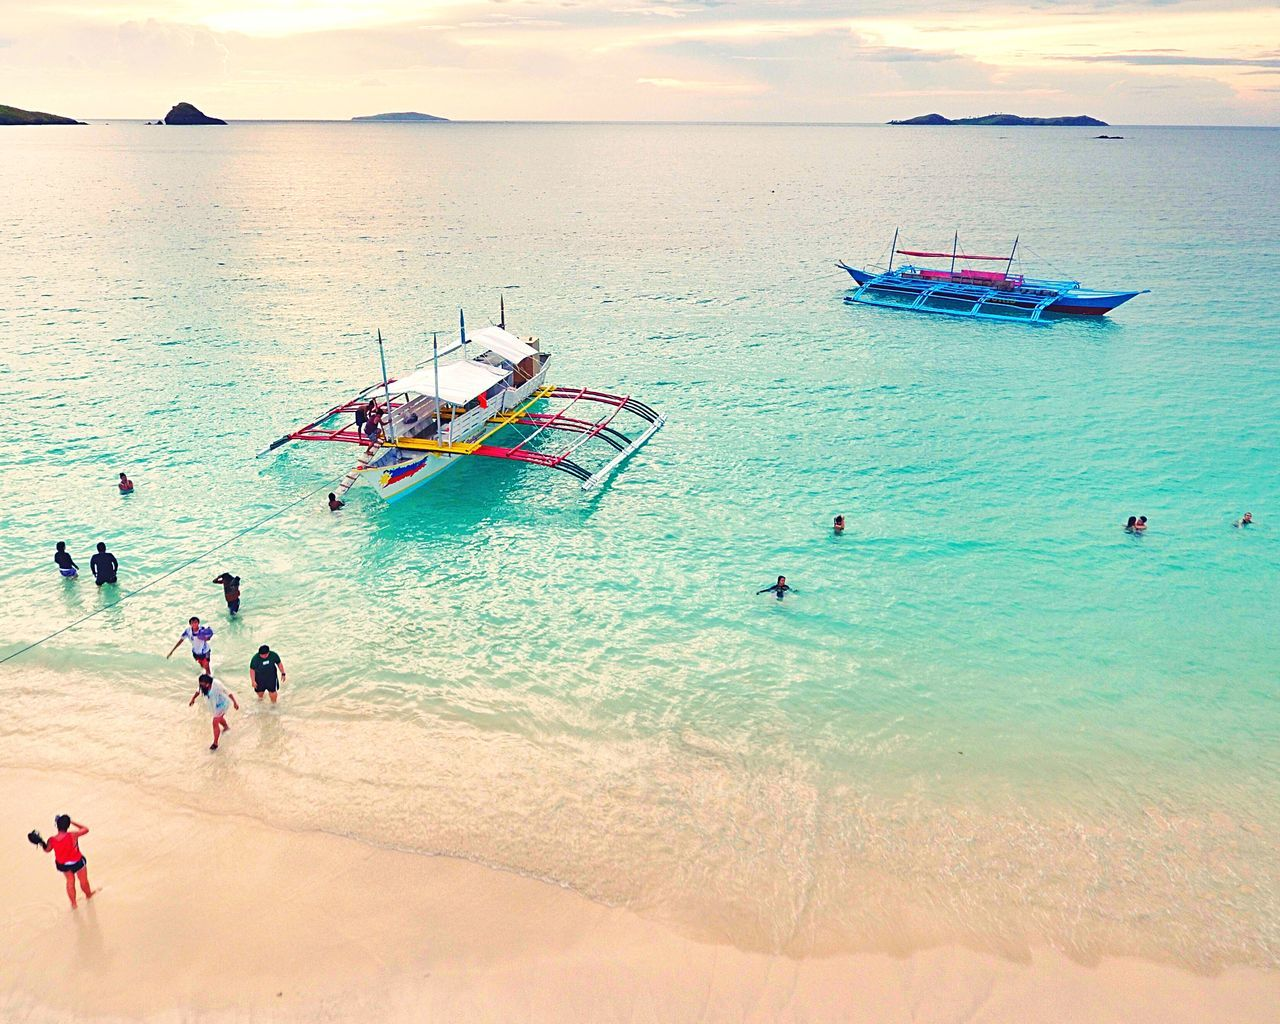 Water Beach Vacations Sea Tourism Tourist Lifestyles Leisure Activity Travel Shore Travel Destinations High Angle View Swimming Scenics Weekend Activities Summer Whitesand Eyeem Philippines Aerial Shot Drone  Boat Nature Horizon Over Water Coastline Trip